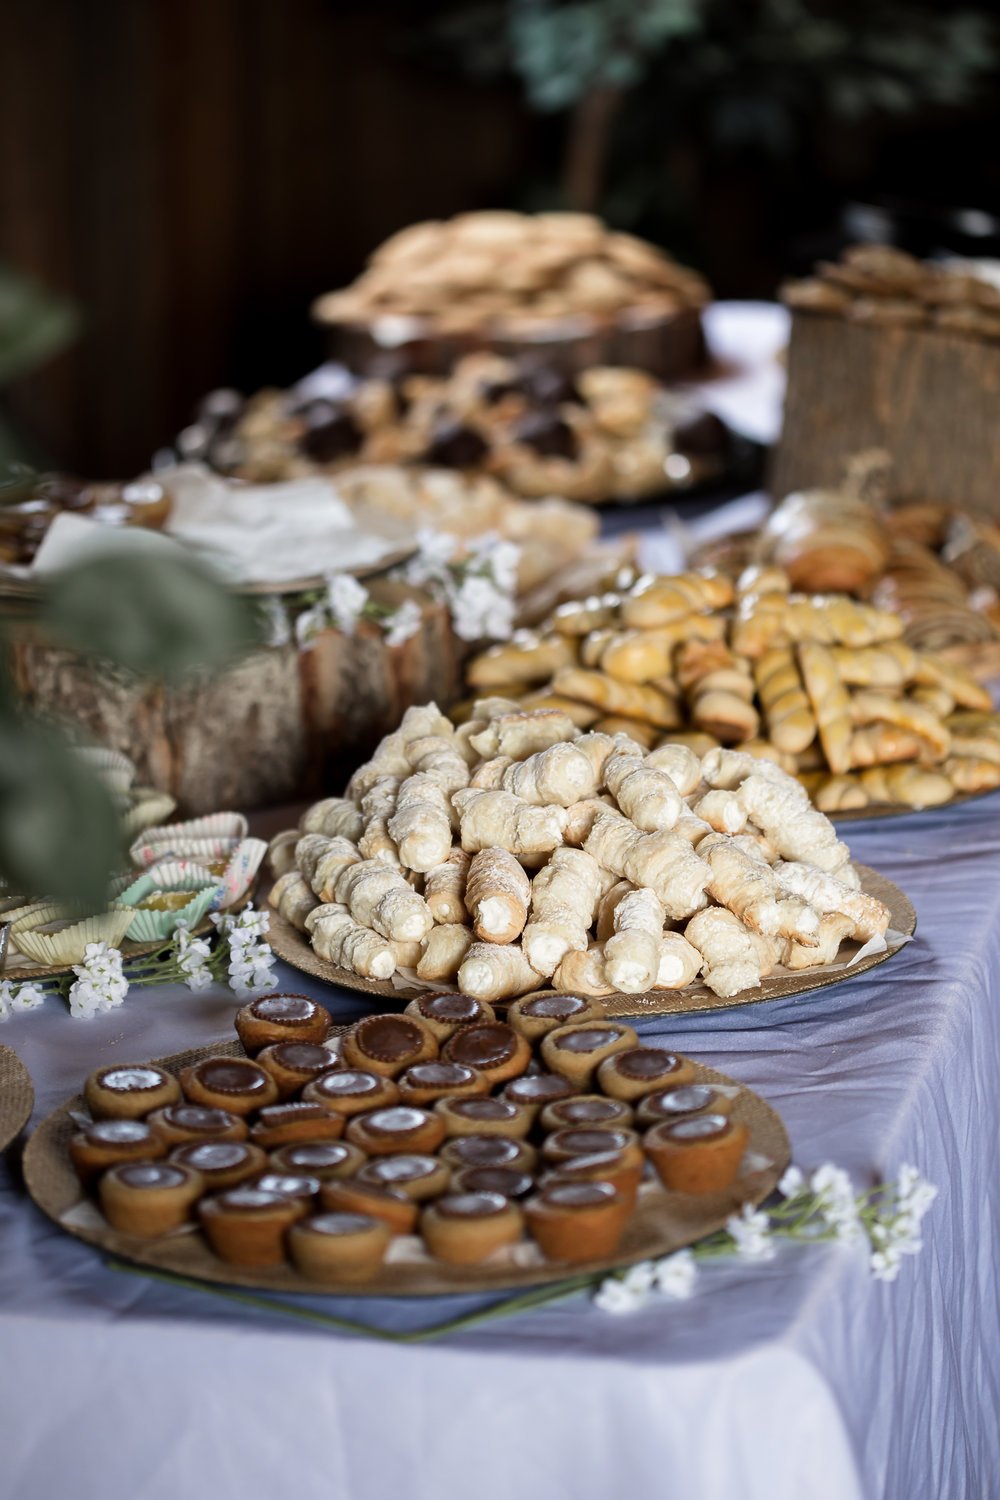 Gandjos_Tinko_BackSeatPhotography_backseatphoto73.JPG